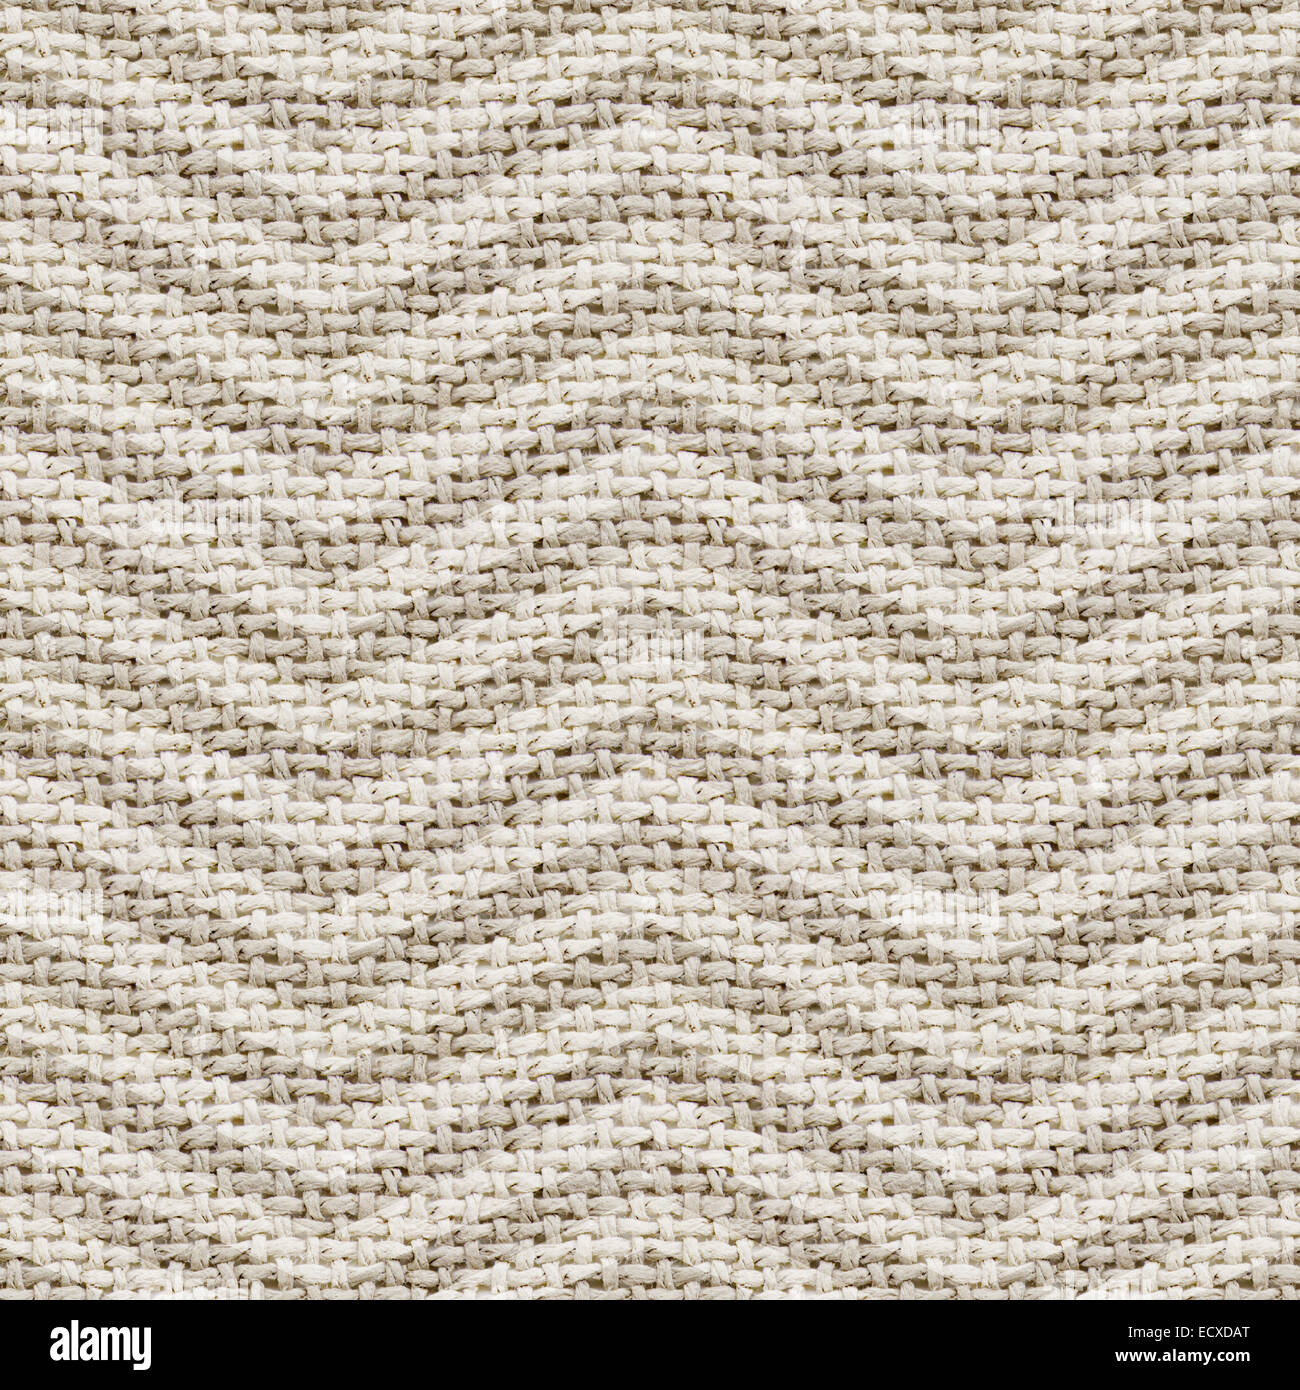 Chevron Pattern Background Imágenes De Stock & Chevron Pattern ...